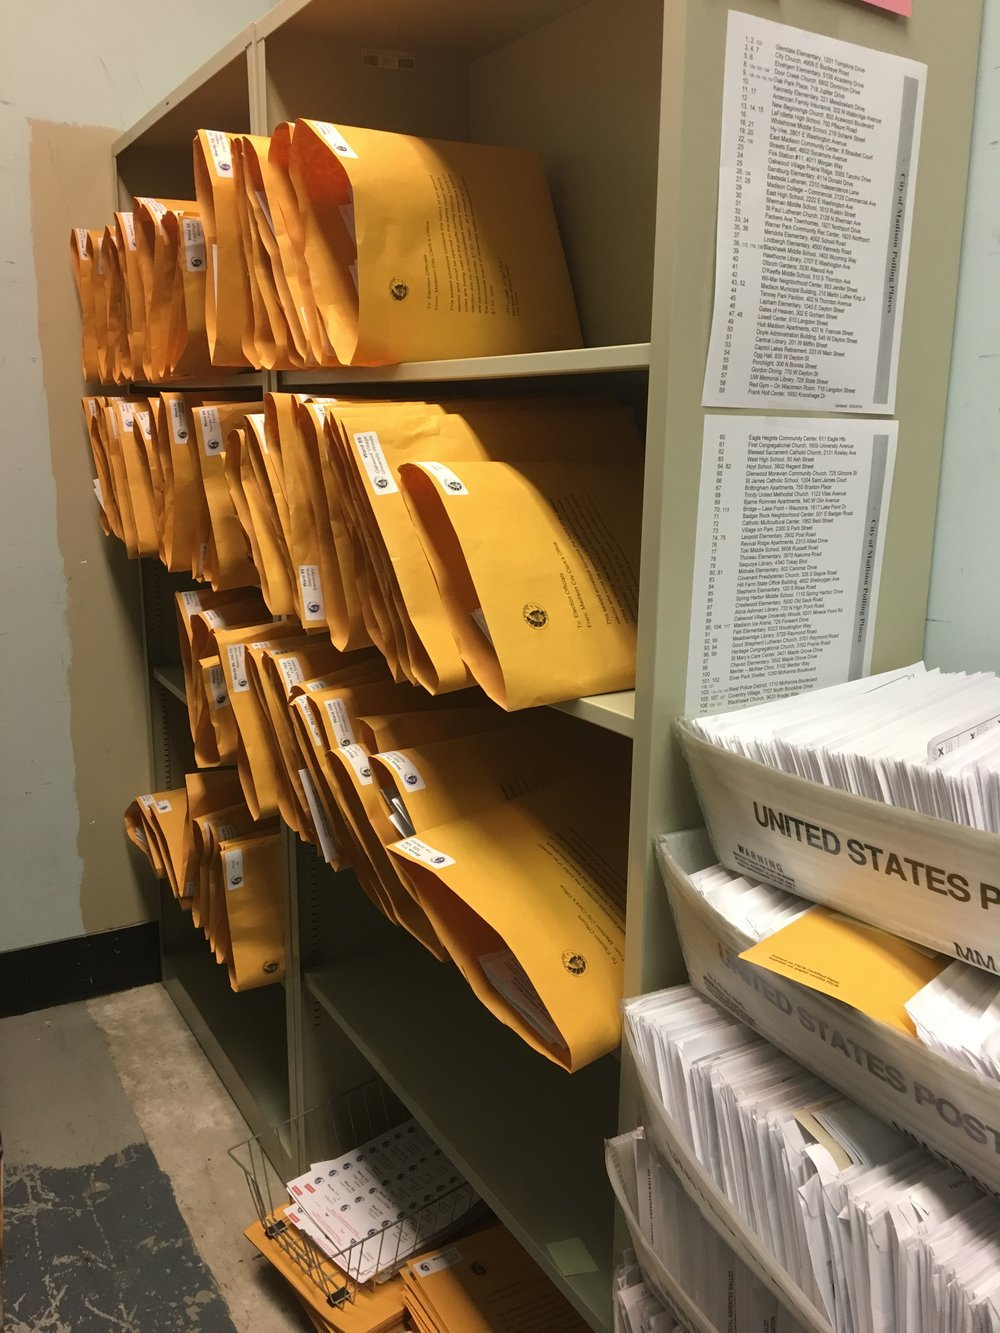 In the vault, sorted ballots are placed into larger envelopes to be delivered to polling locations on Election Day. (Photo courtesy of Maribeth Witzel-Behl.)